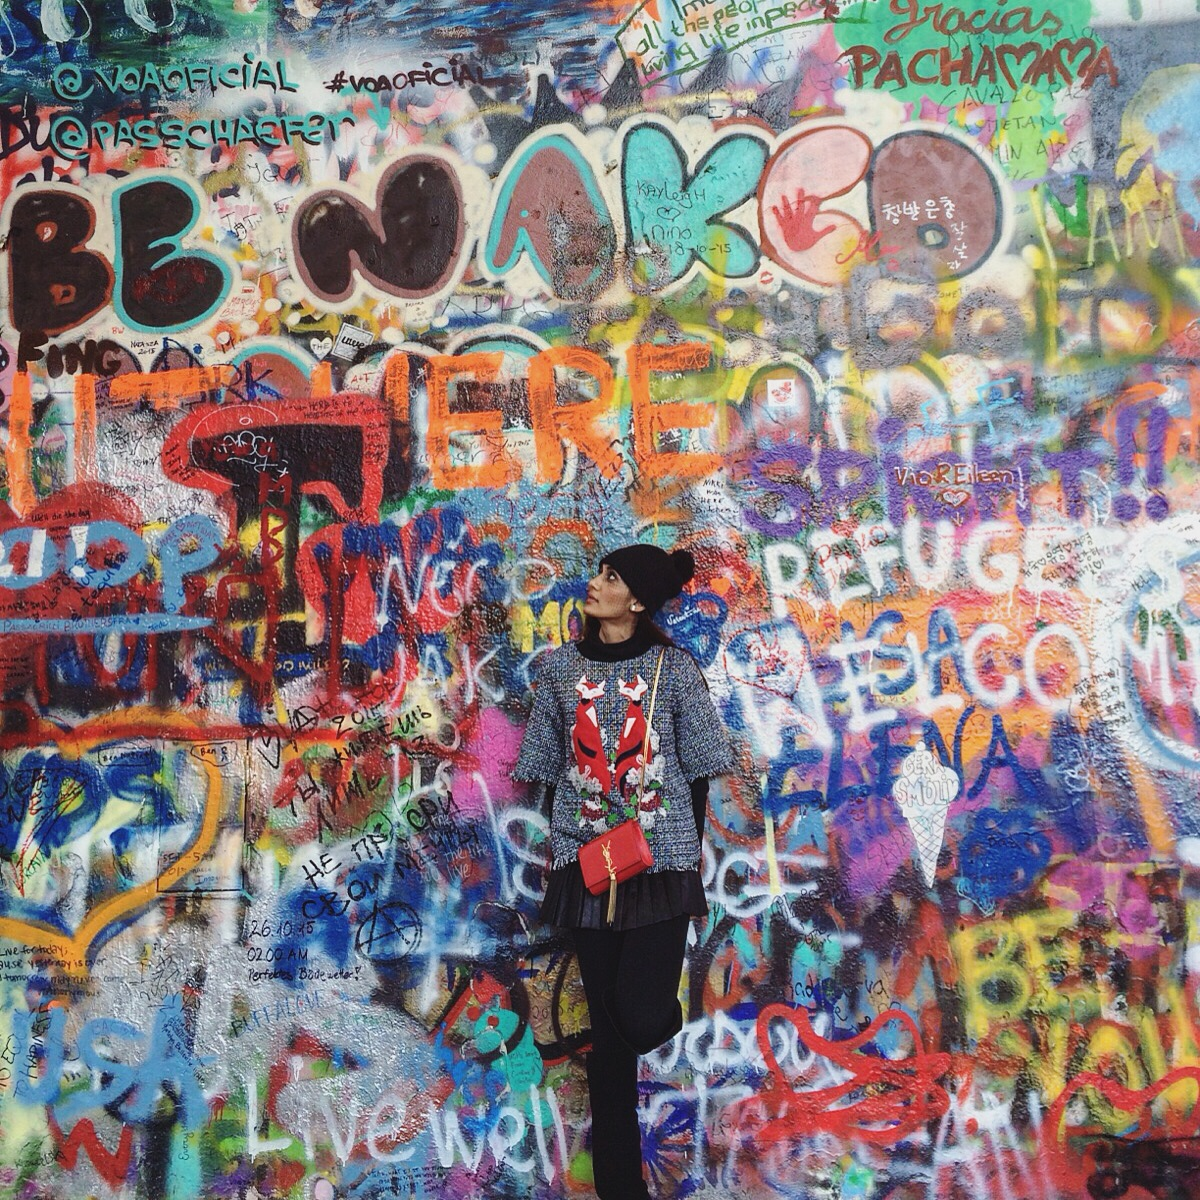 Lennon wall, Pttrague